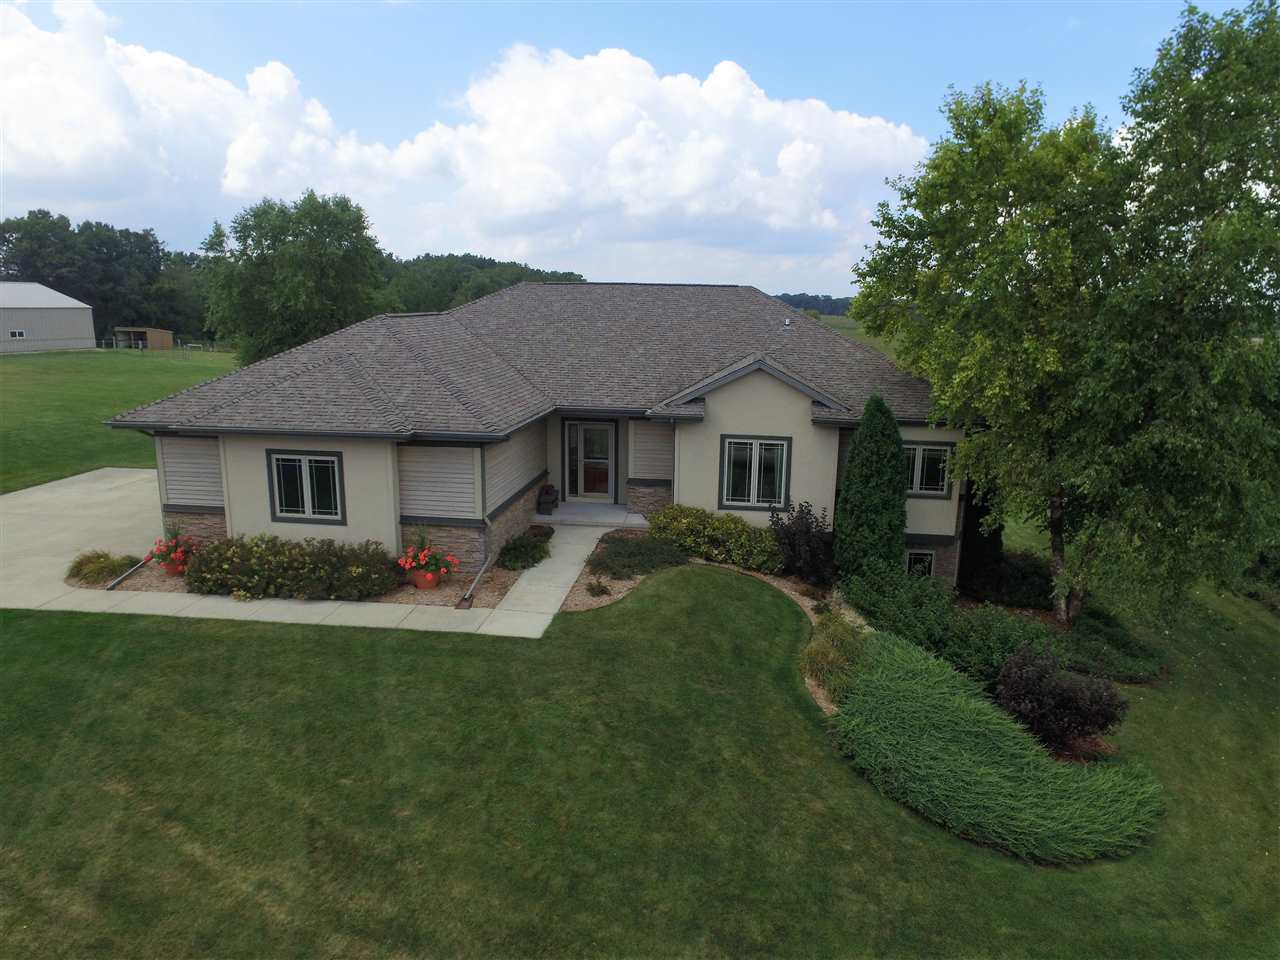 11230 E County Road N, Lima, WI 53190